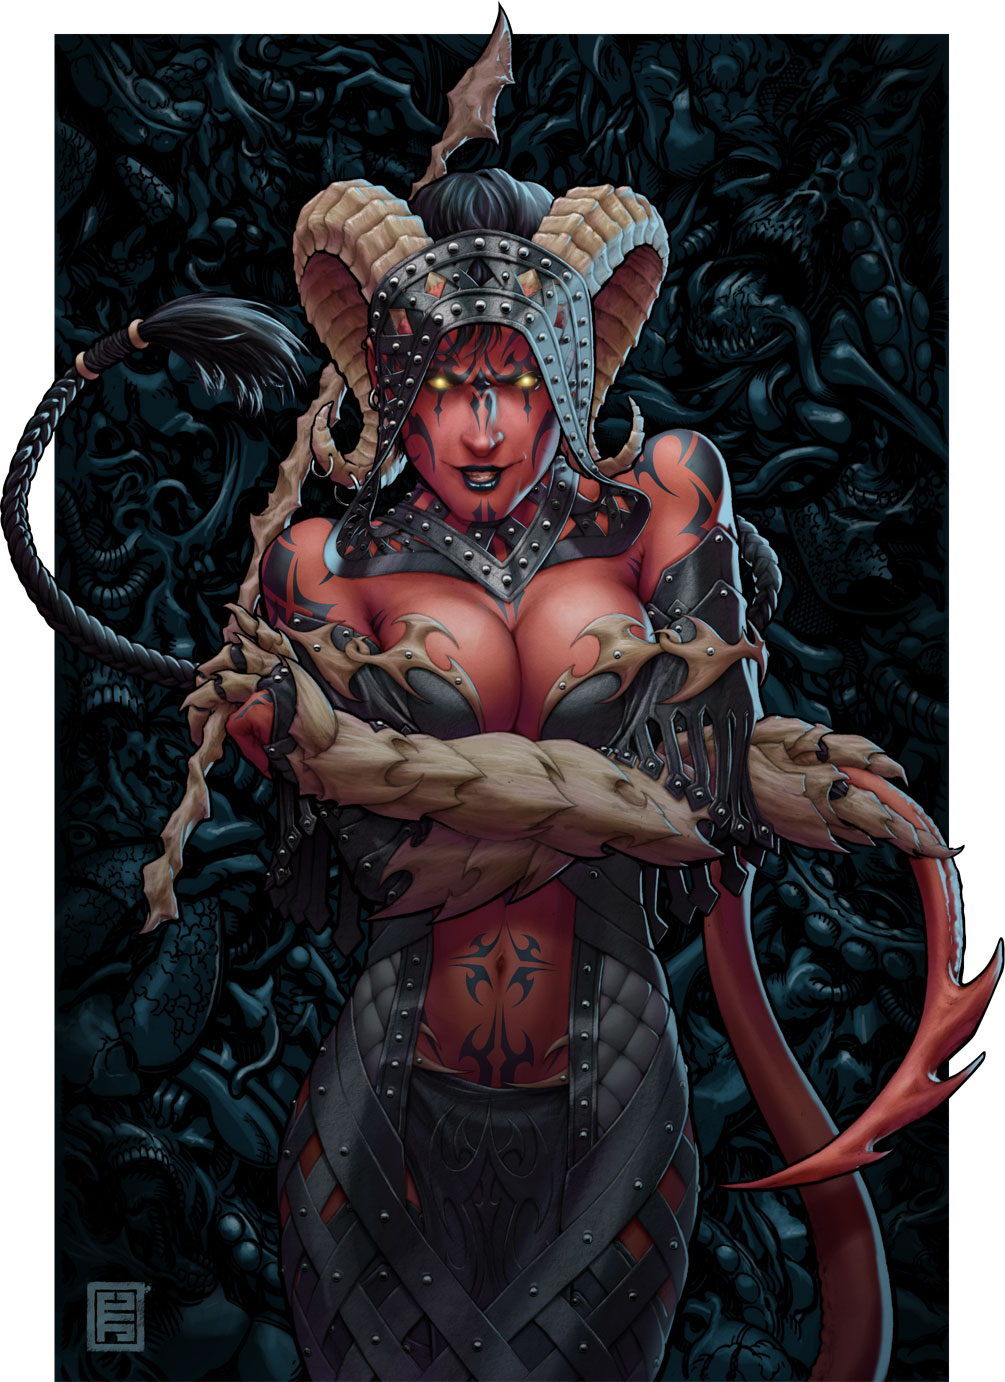 Dungeons and dragons female demons nude hentia photo